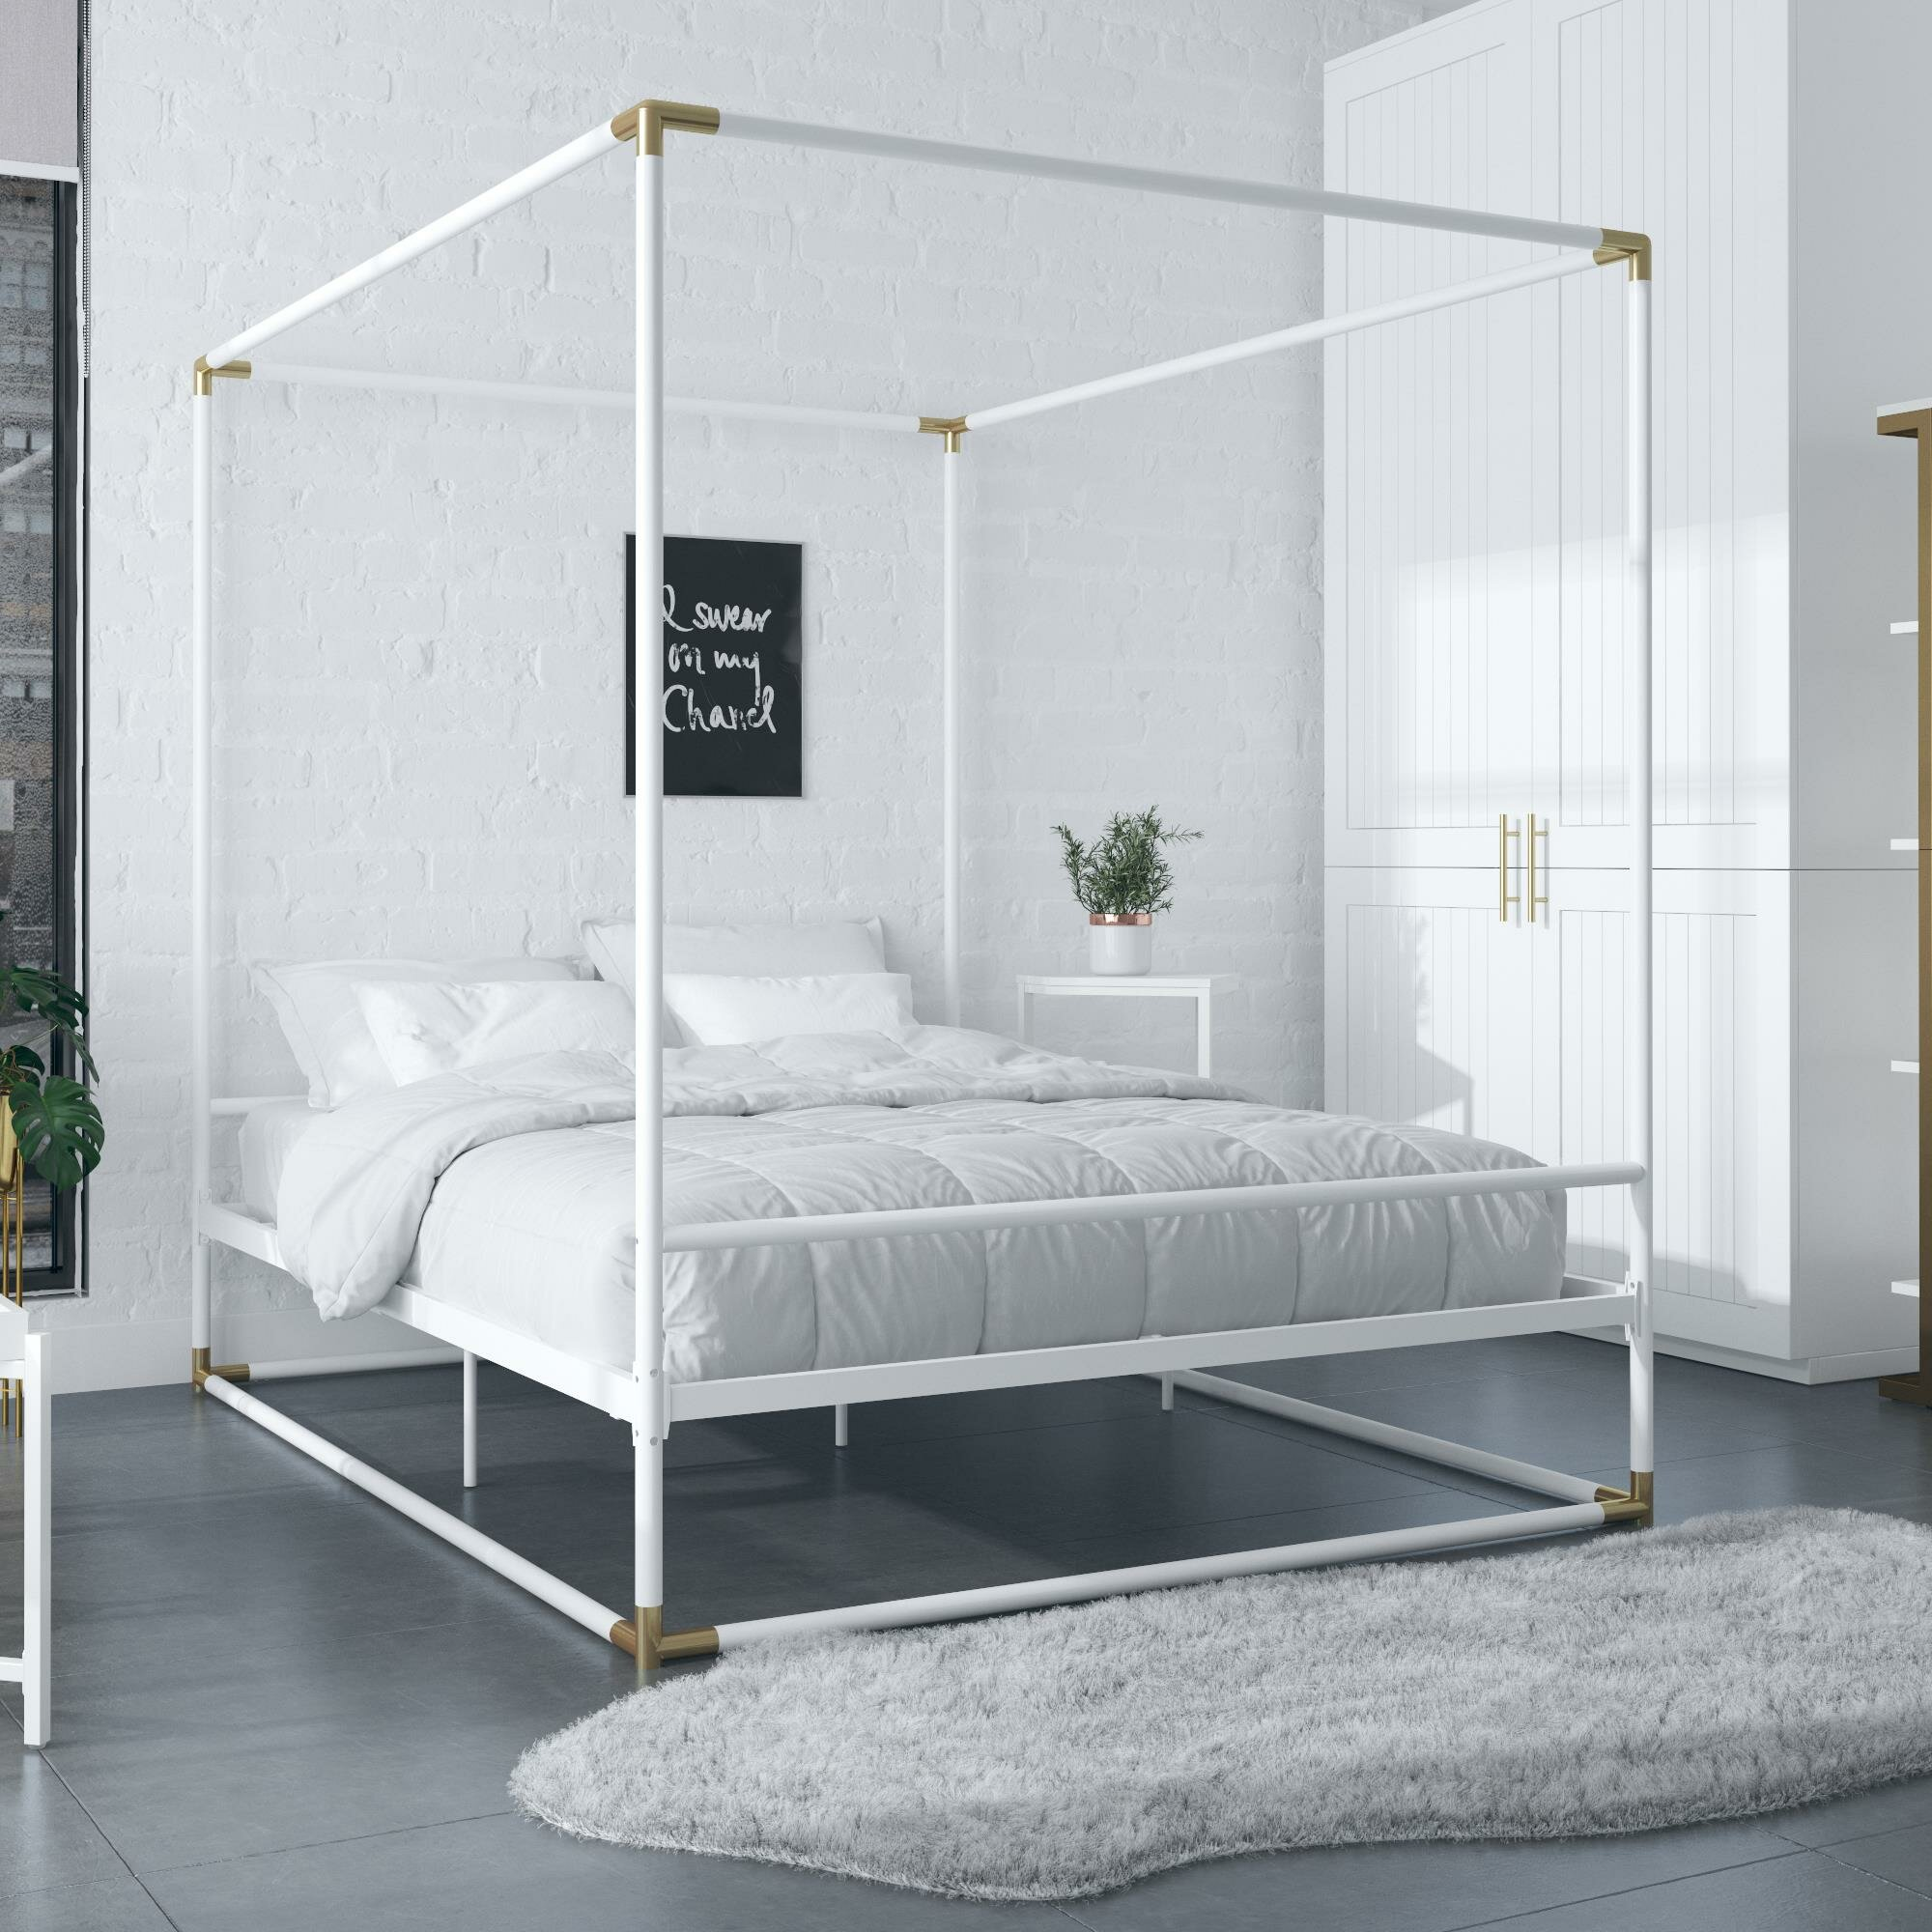 Metal White Beds Bed Frames Free Shipping Over 35 Wayfair